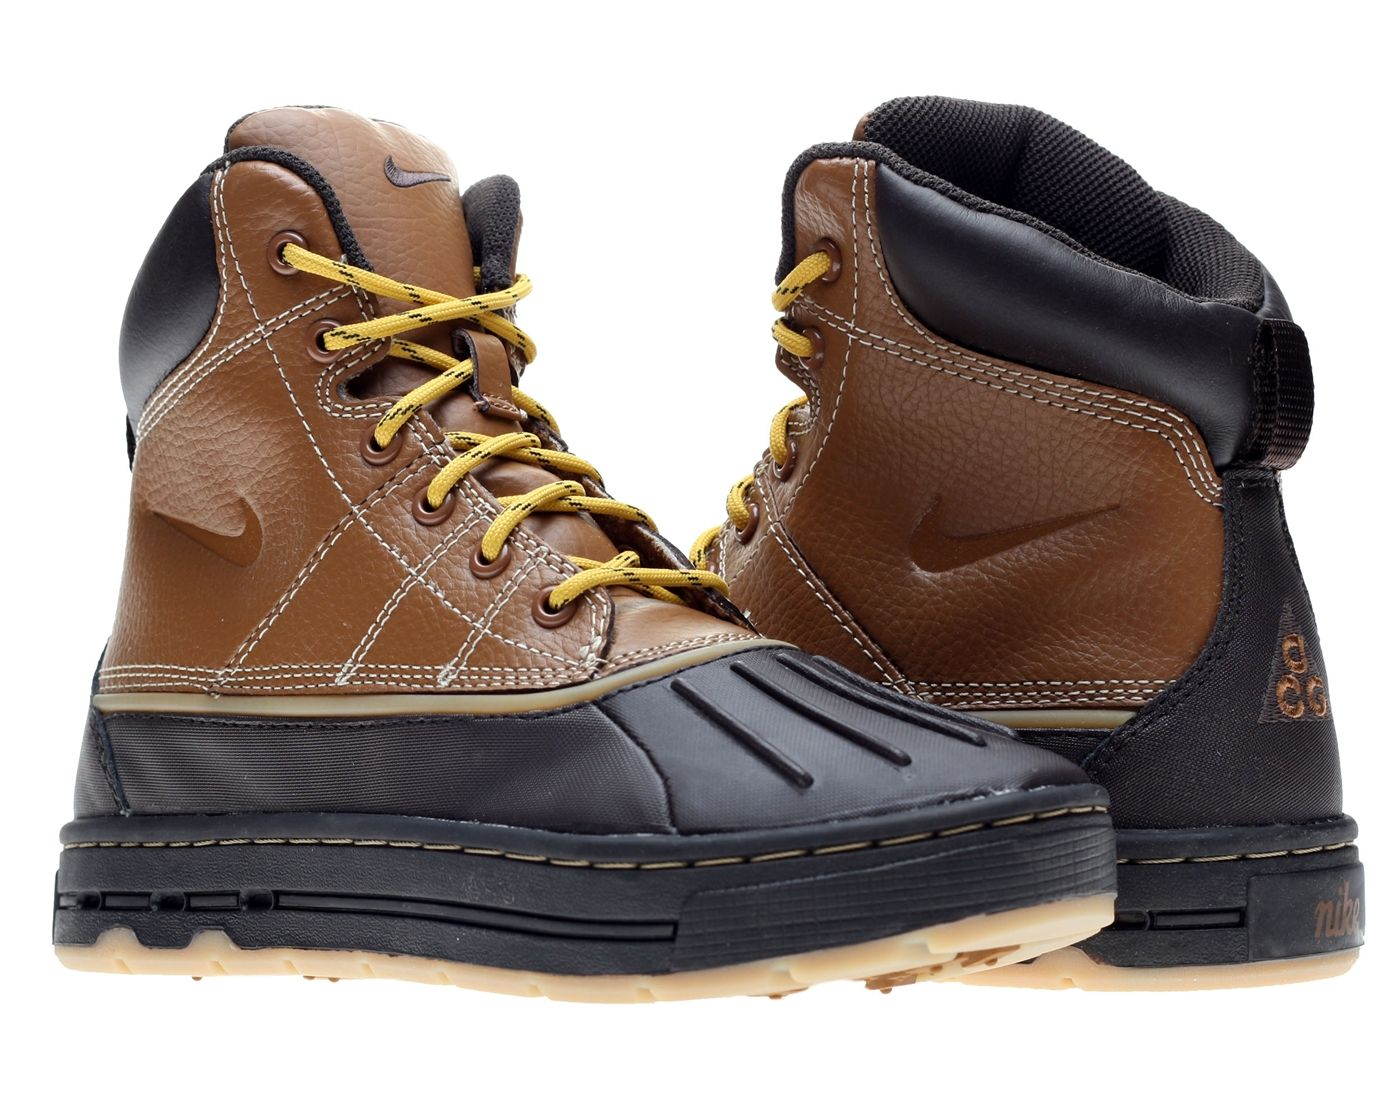 Brown Nike Acg Boots For Men  1fa2d4e97f1d0